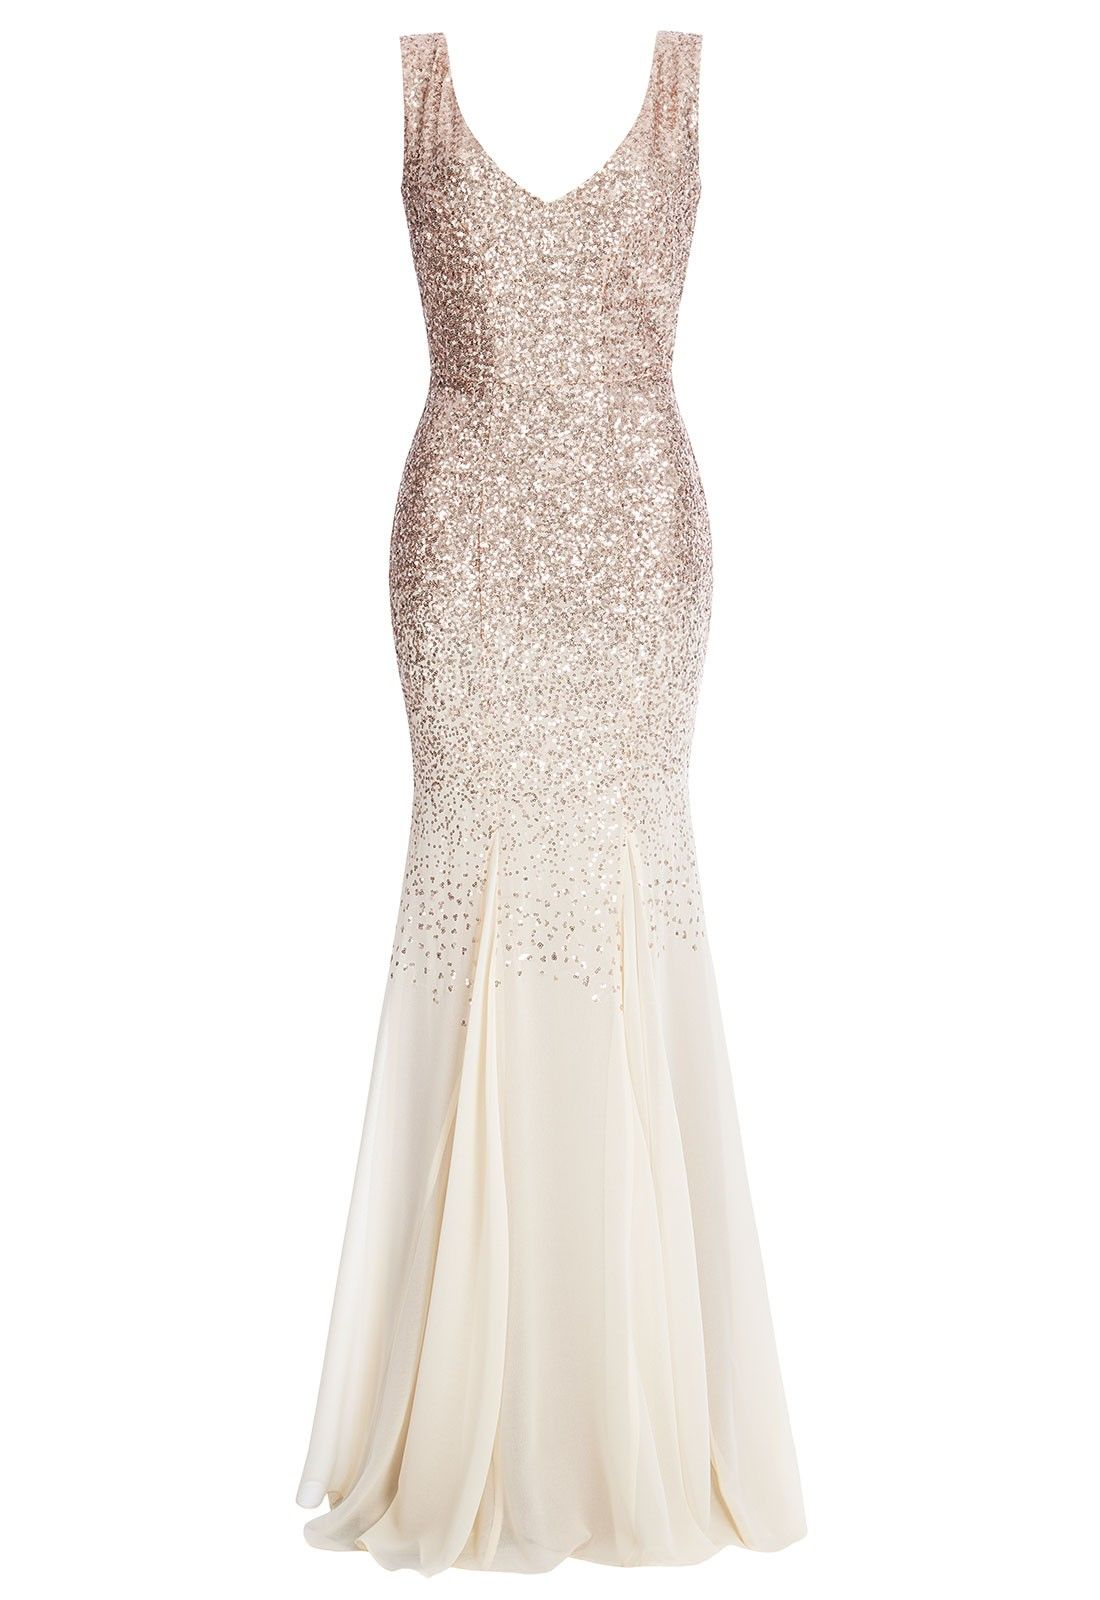 3d5df731 Ooze A-List glamour at your ball, prom or evening event in this stunning  sequin and chiffon maxi dress from Goddiva! This dress was designed to make  a ...